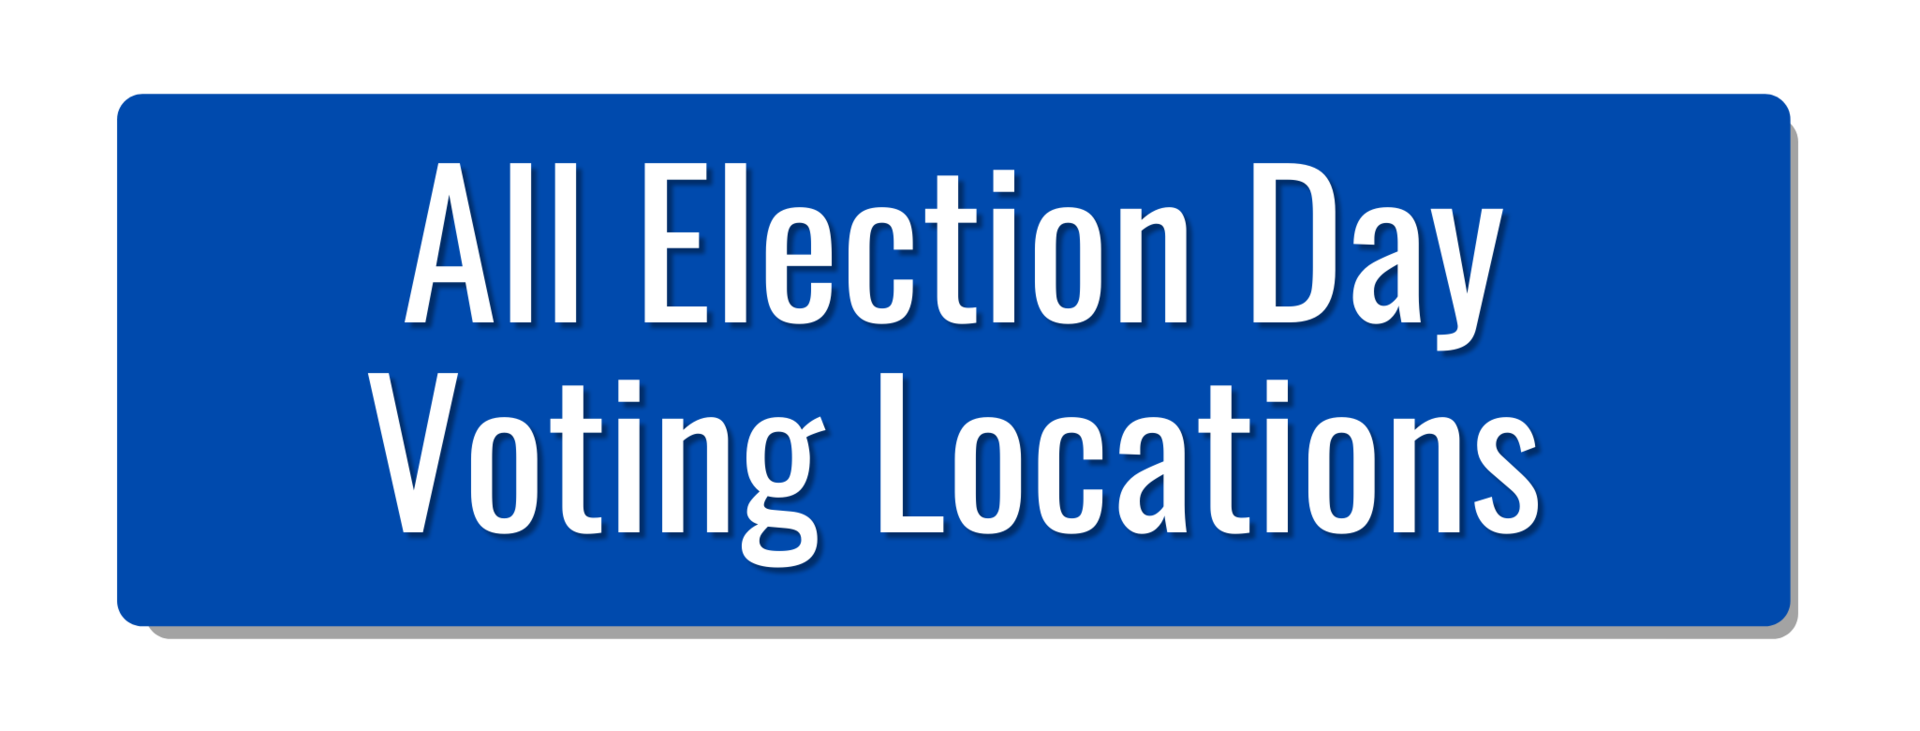 click for all election day locations